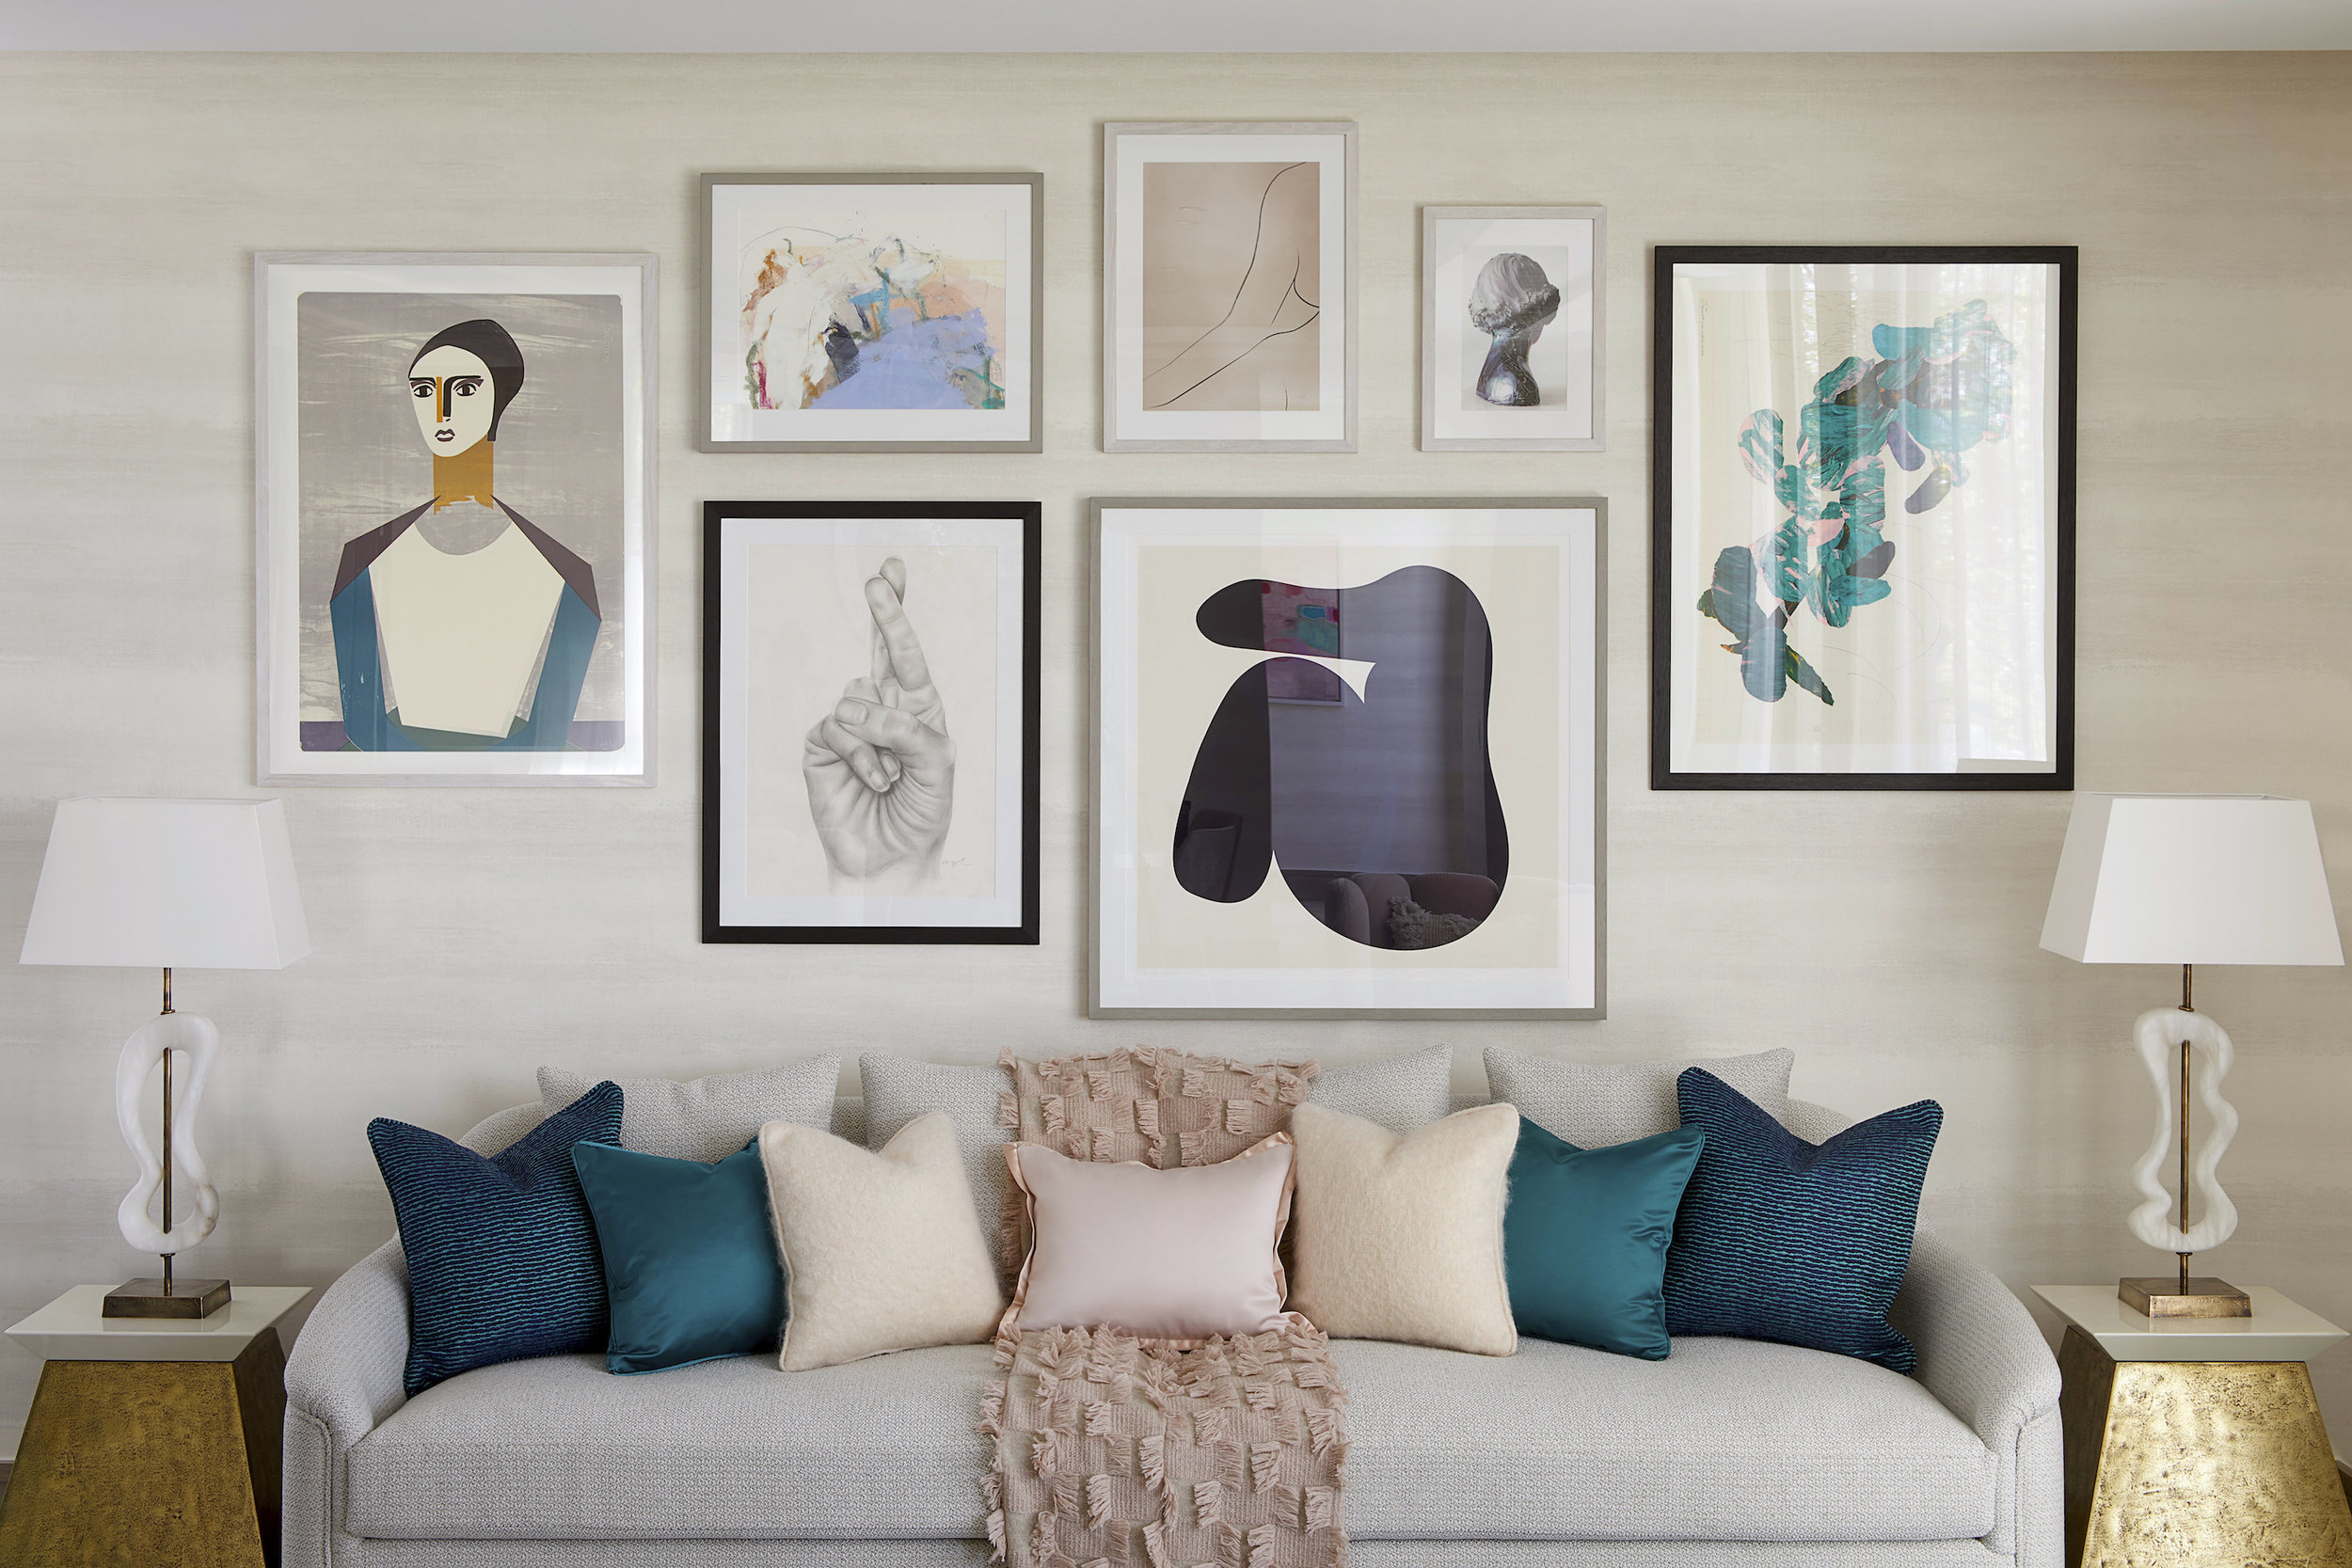 Chiltern Place | Marylebone   Living Room Cluster Wall - Collage, Oil Pastel, Screenprints, Photography, and Drawings on Paper      Interior Design: Elicyon  Developer: Ronson Capital Partners